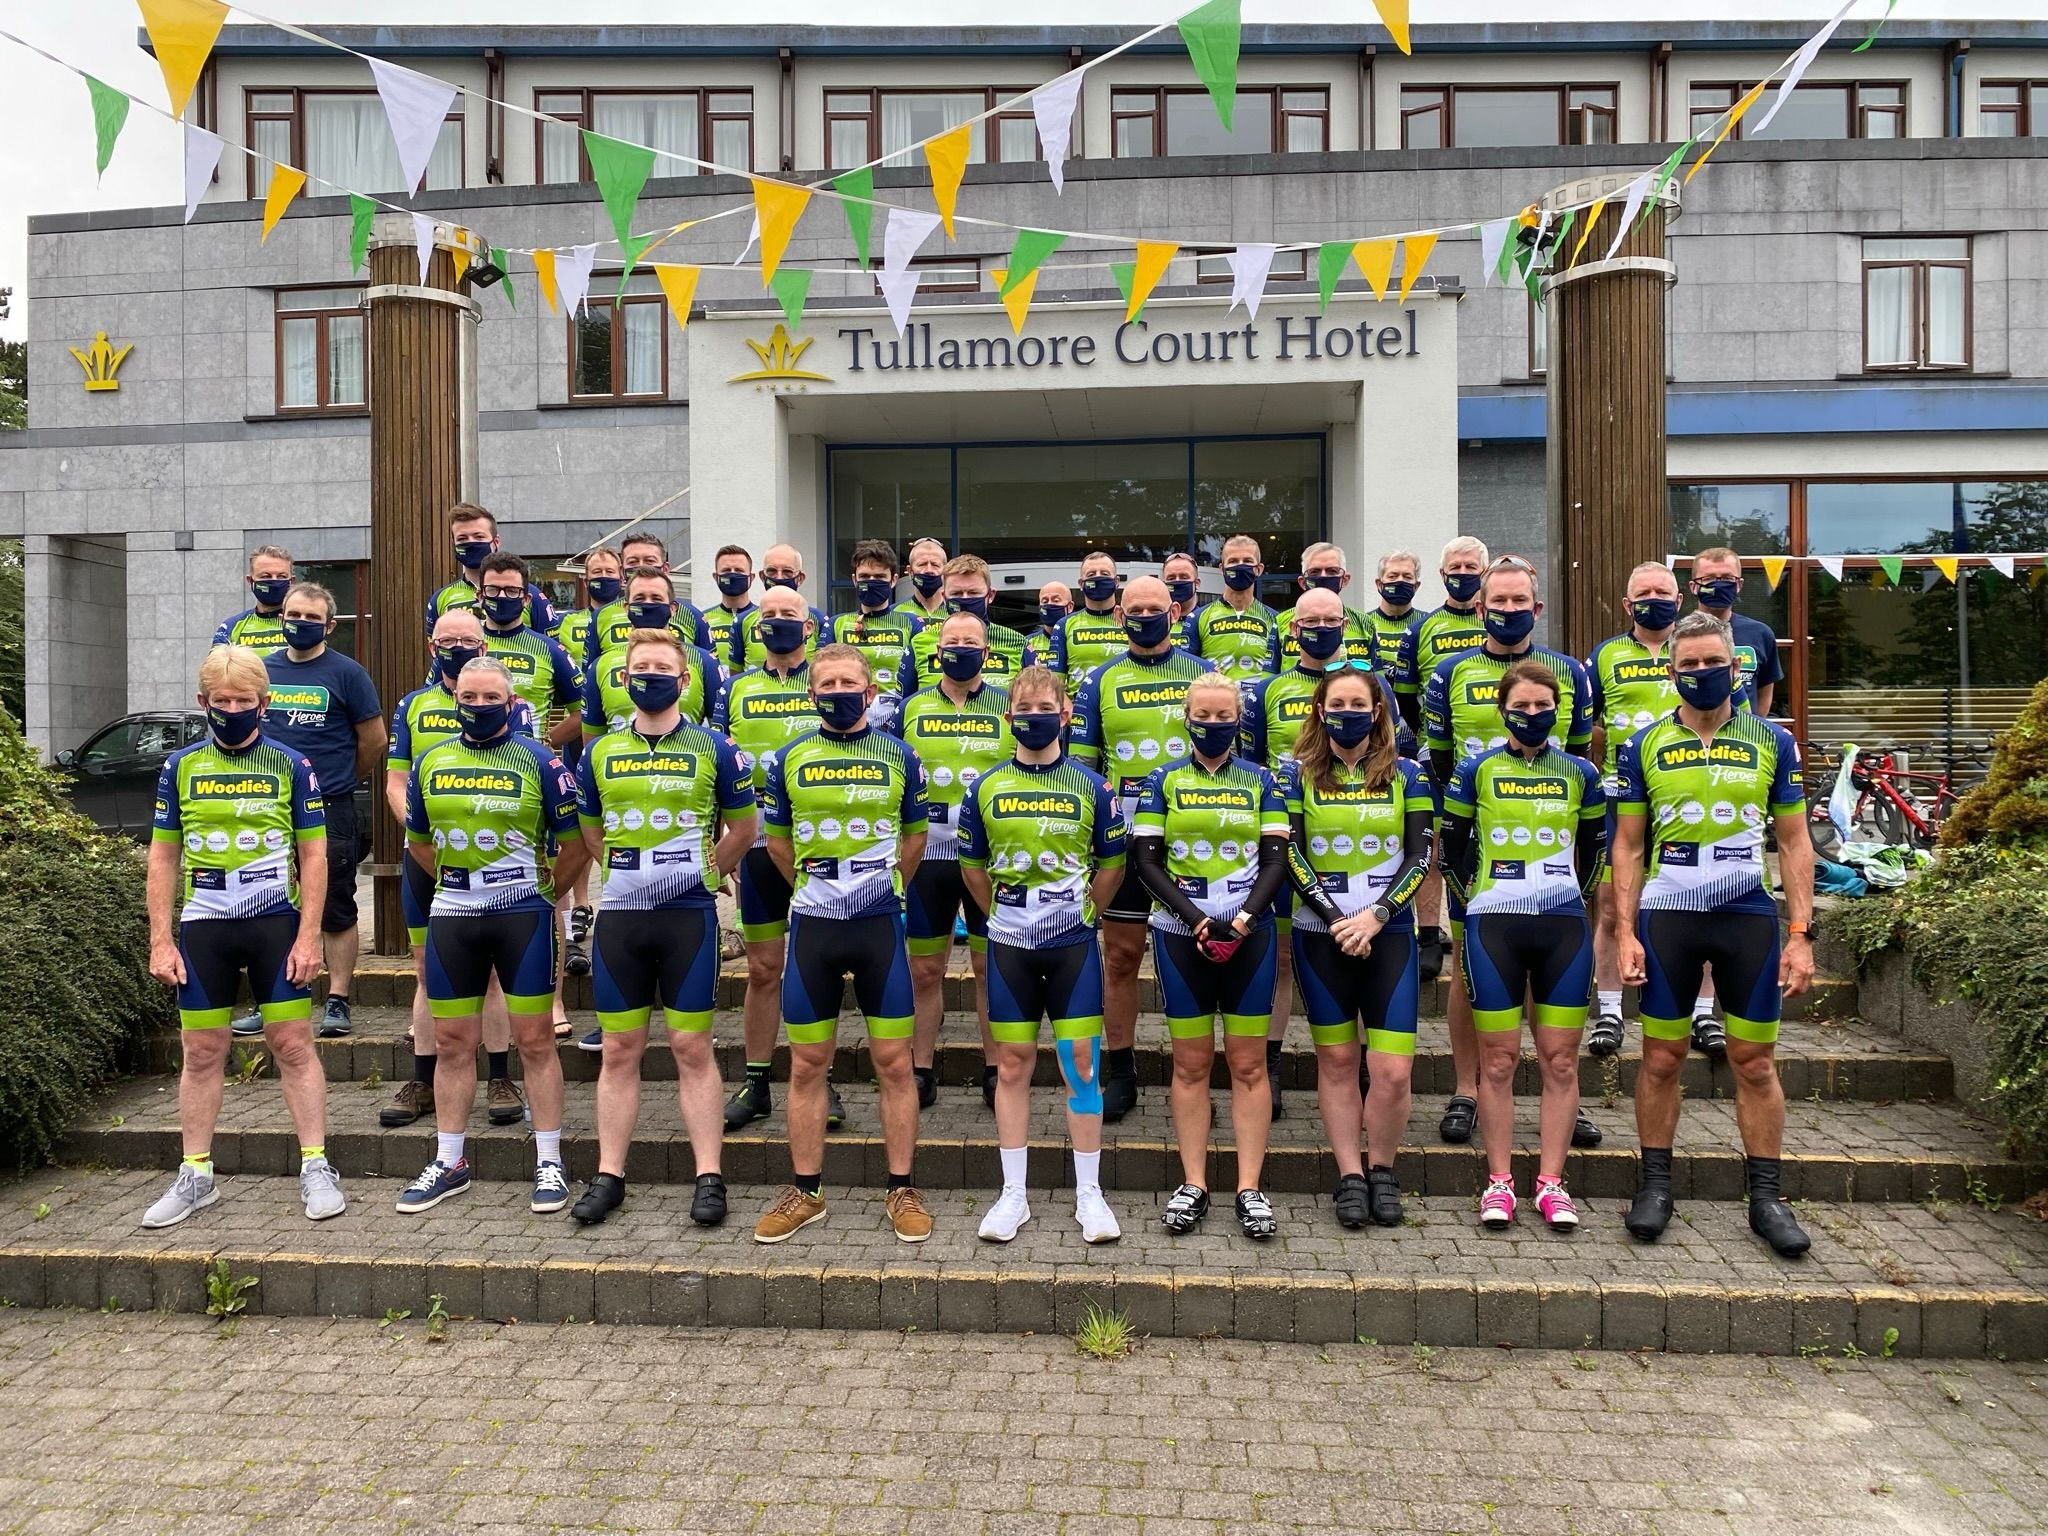 charity_cycling_clothing